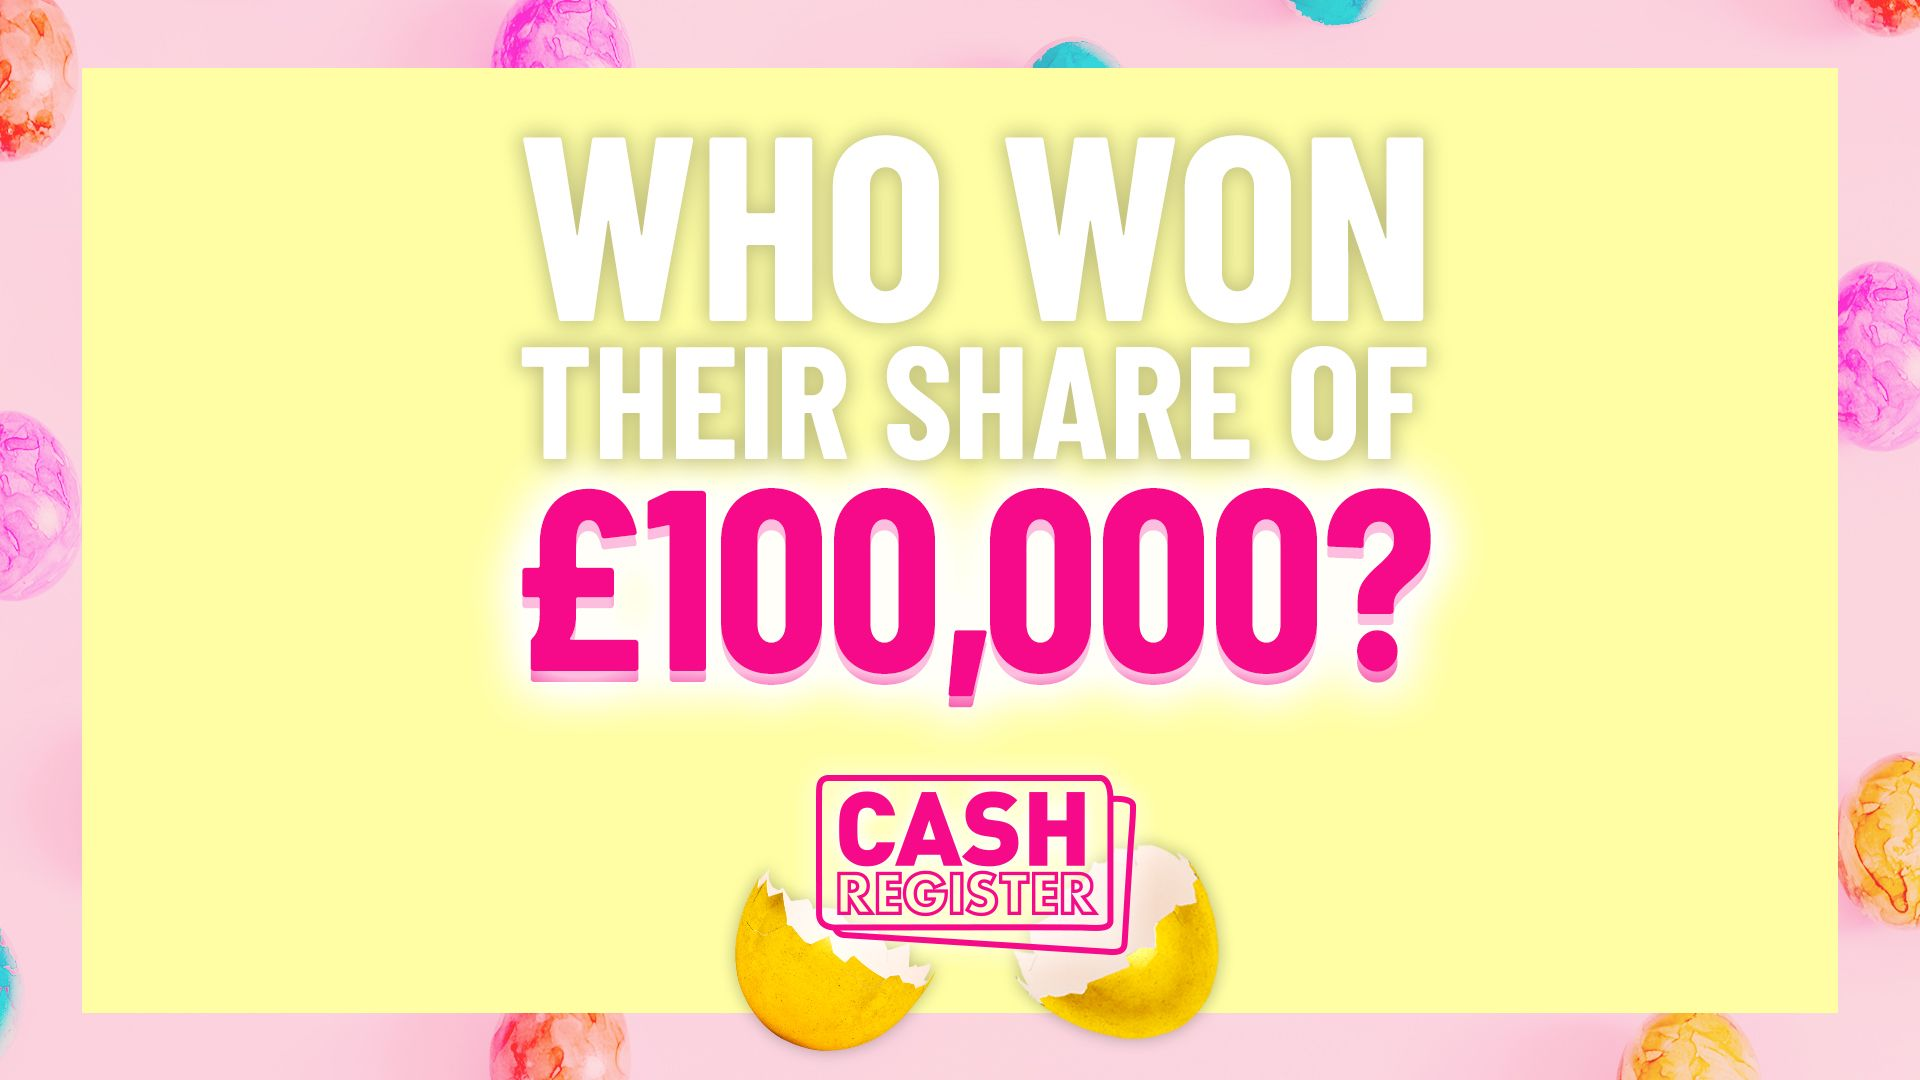 Who won their share of £100,000 today?